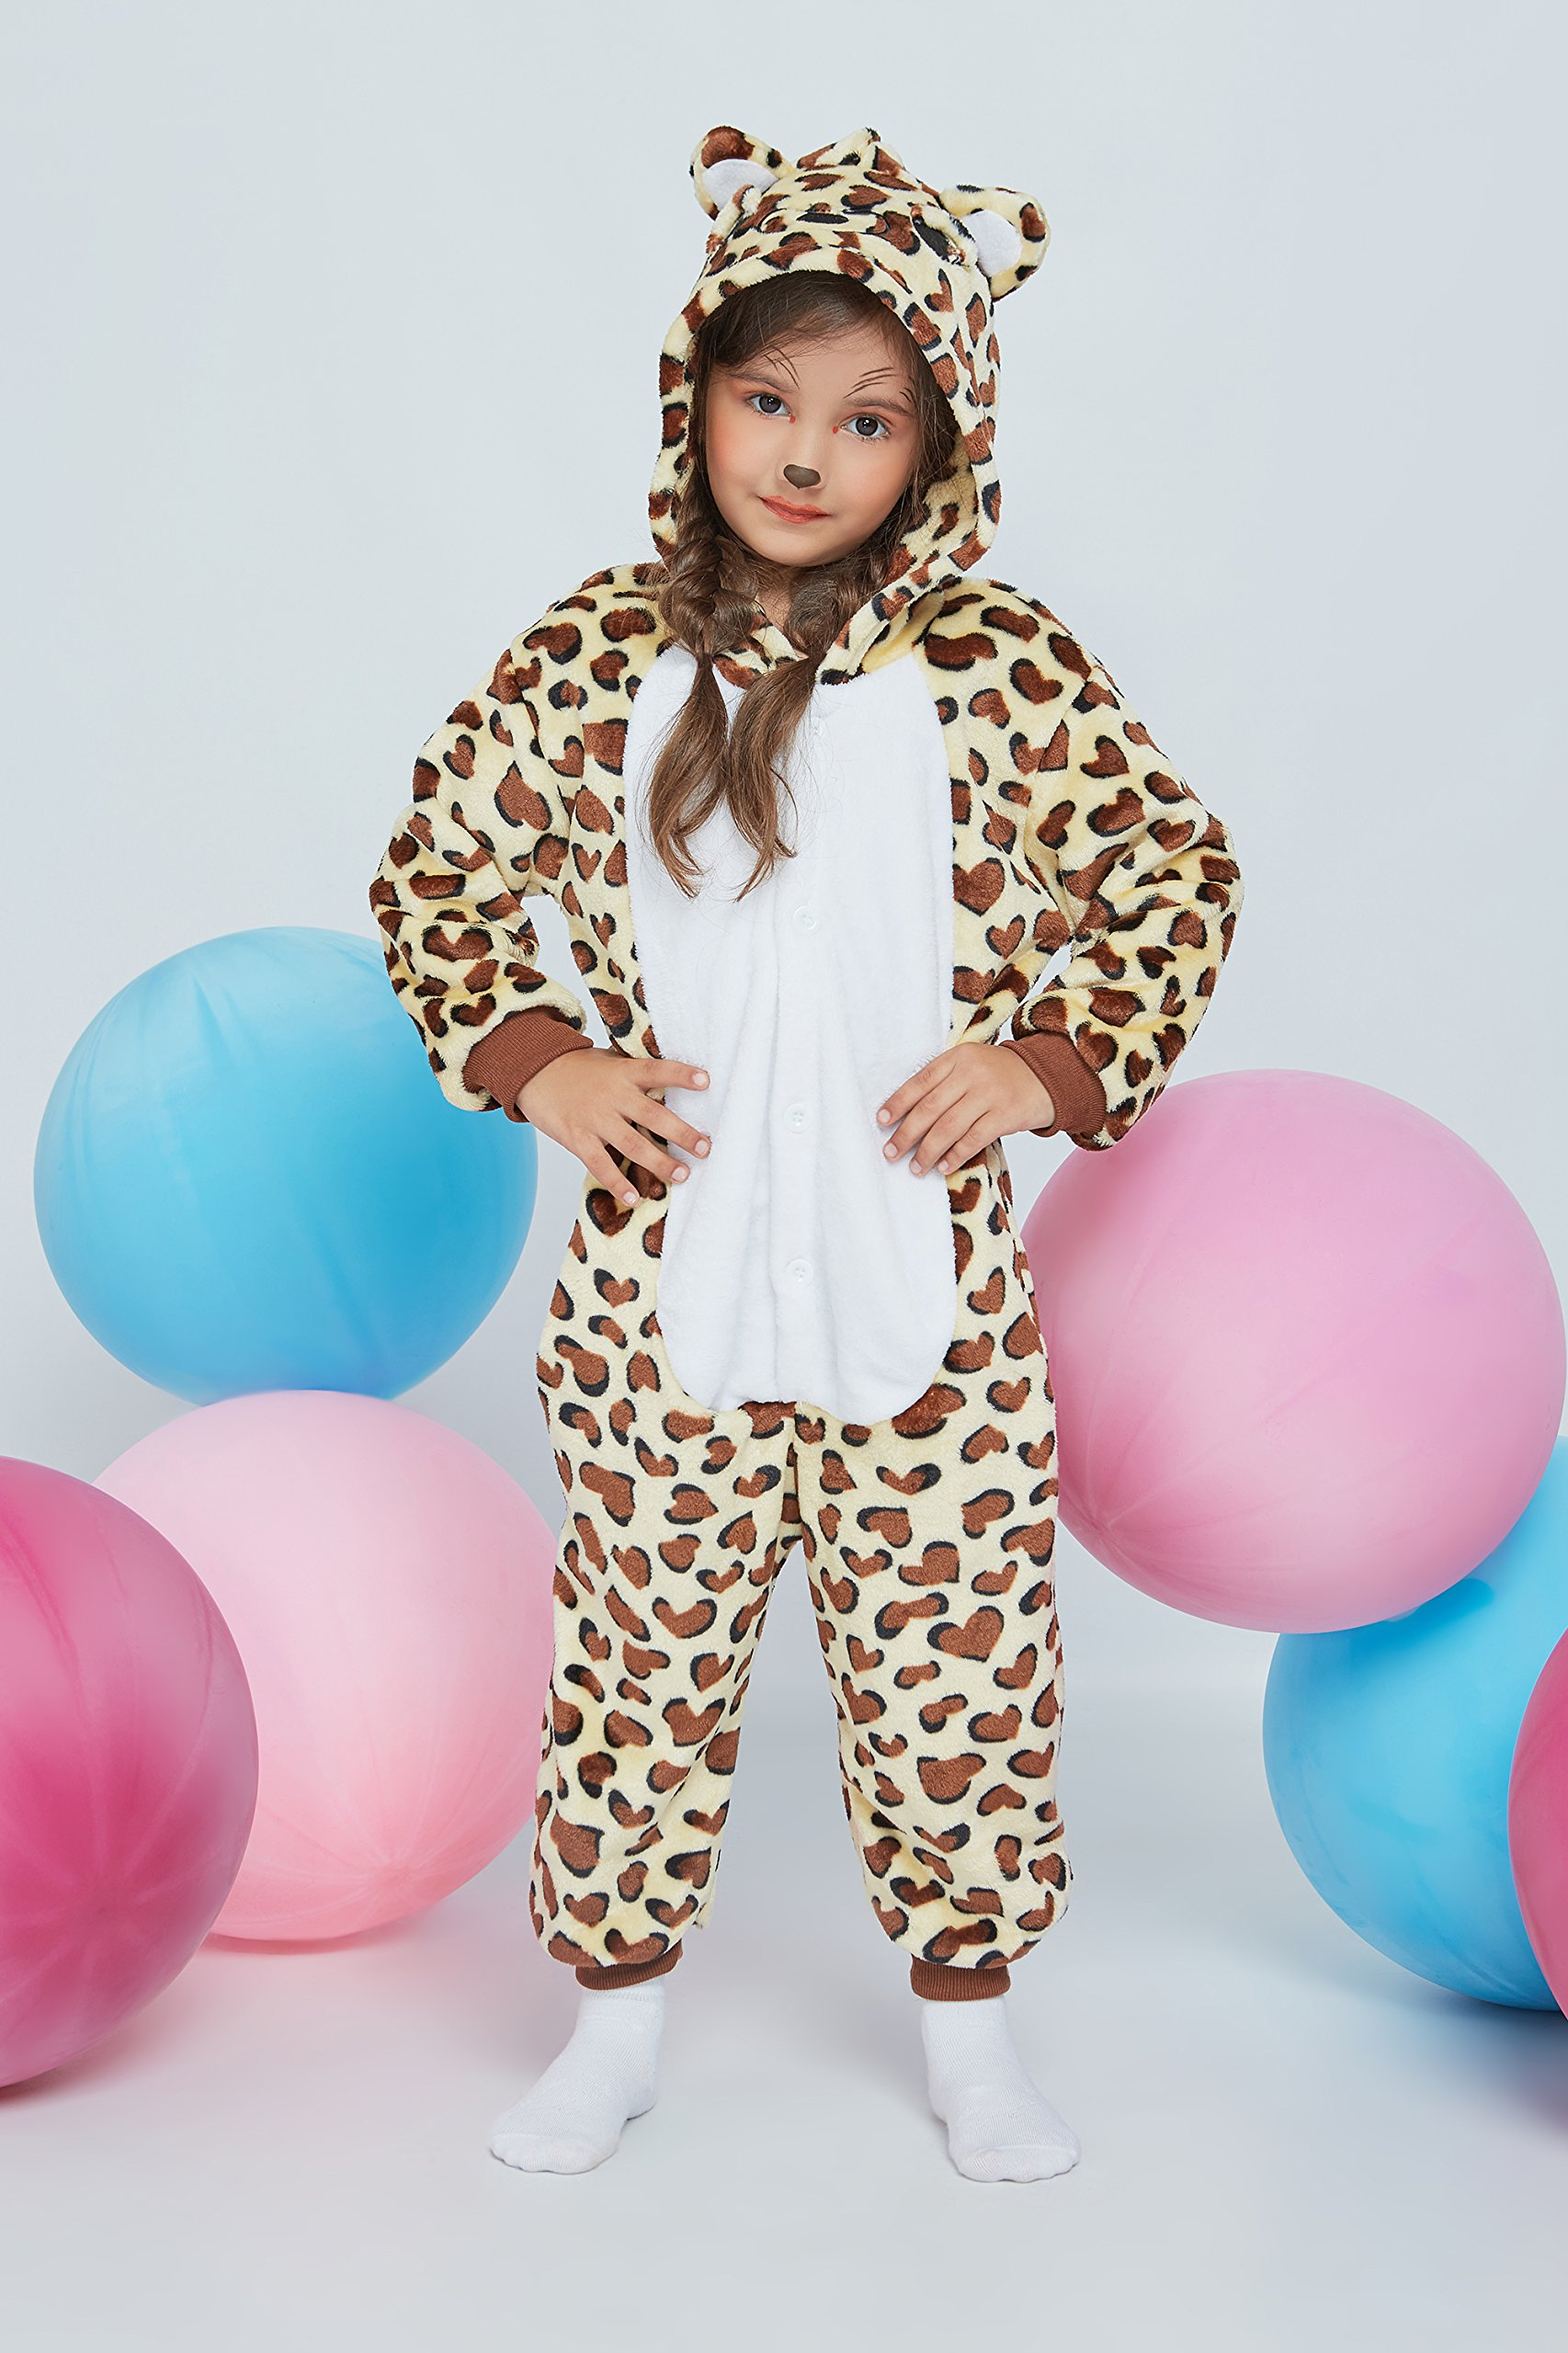 Kids Leopard Kigurumi Animal Onesie Pajamas Plush Onsie One Piece Cosplay Costume (Yellow, Brown, White) by Nothing But Love (Image #3)